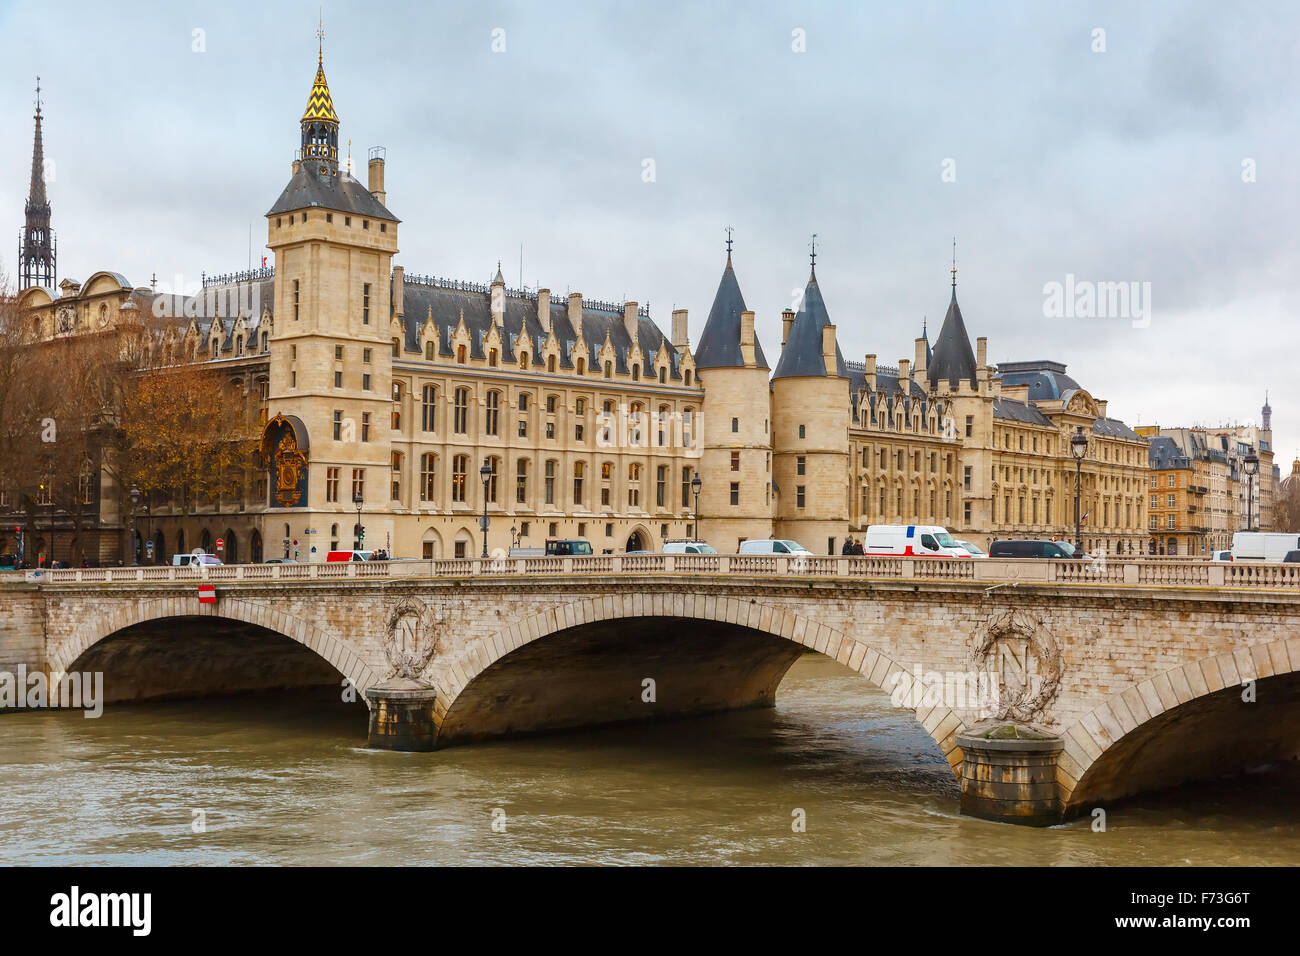 River Seine and the Conciergerie in Paris, France - Stock Image